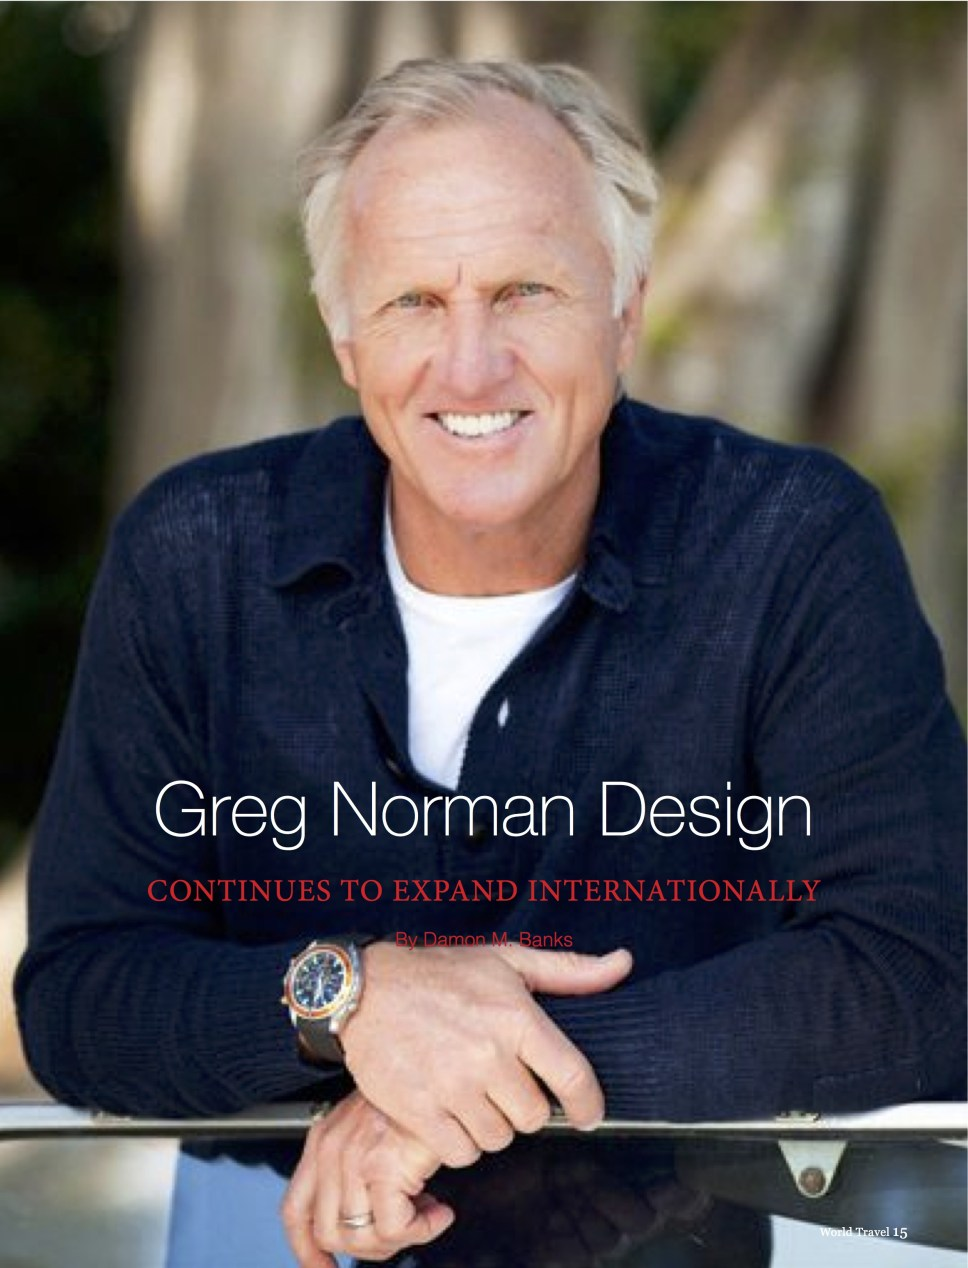 WTM_GregNorman_Damon-M-Banks_1